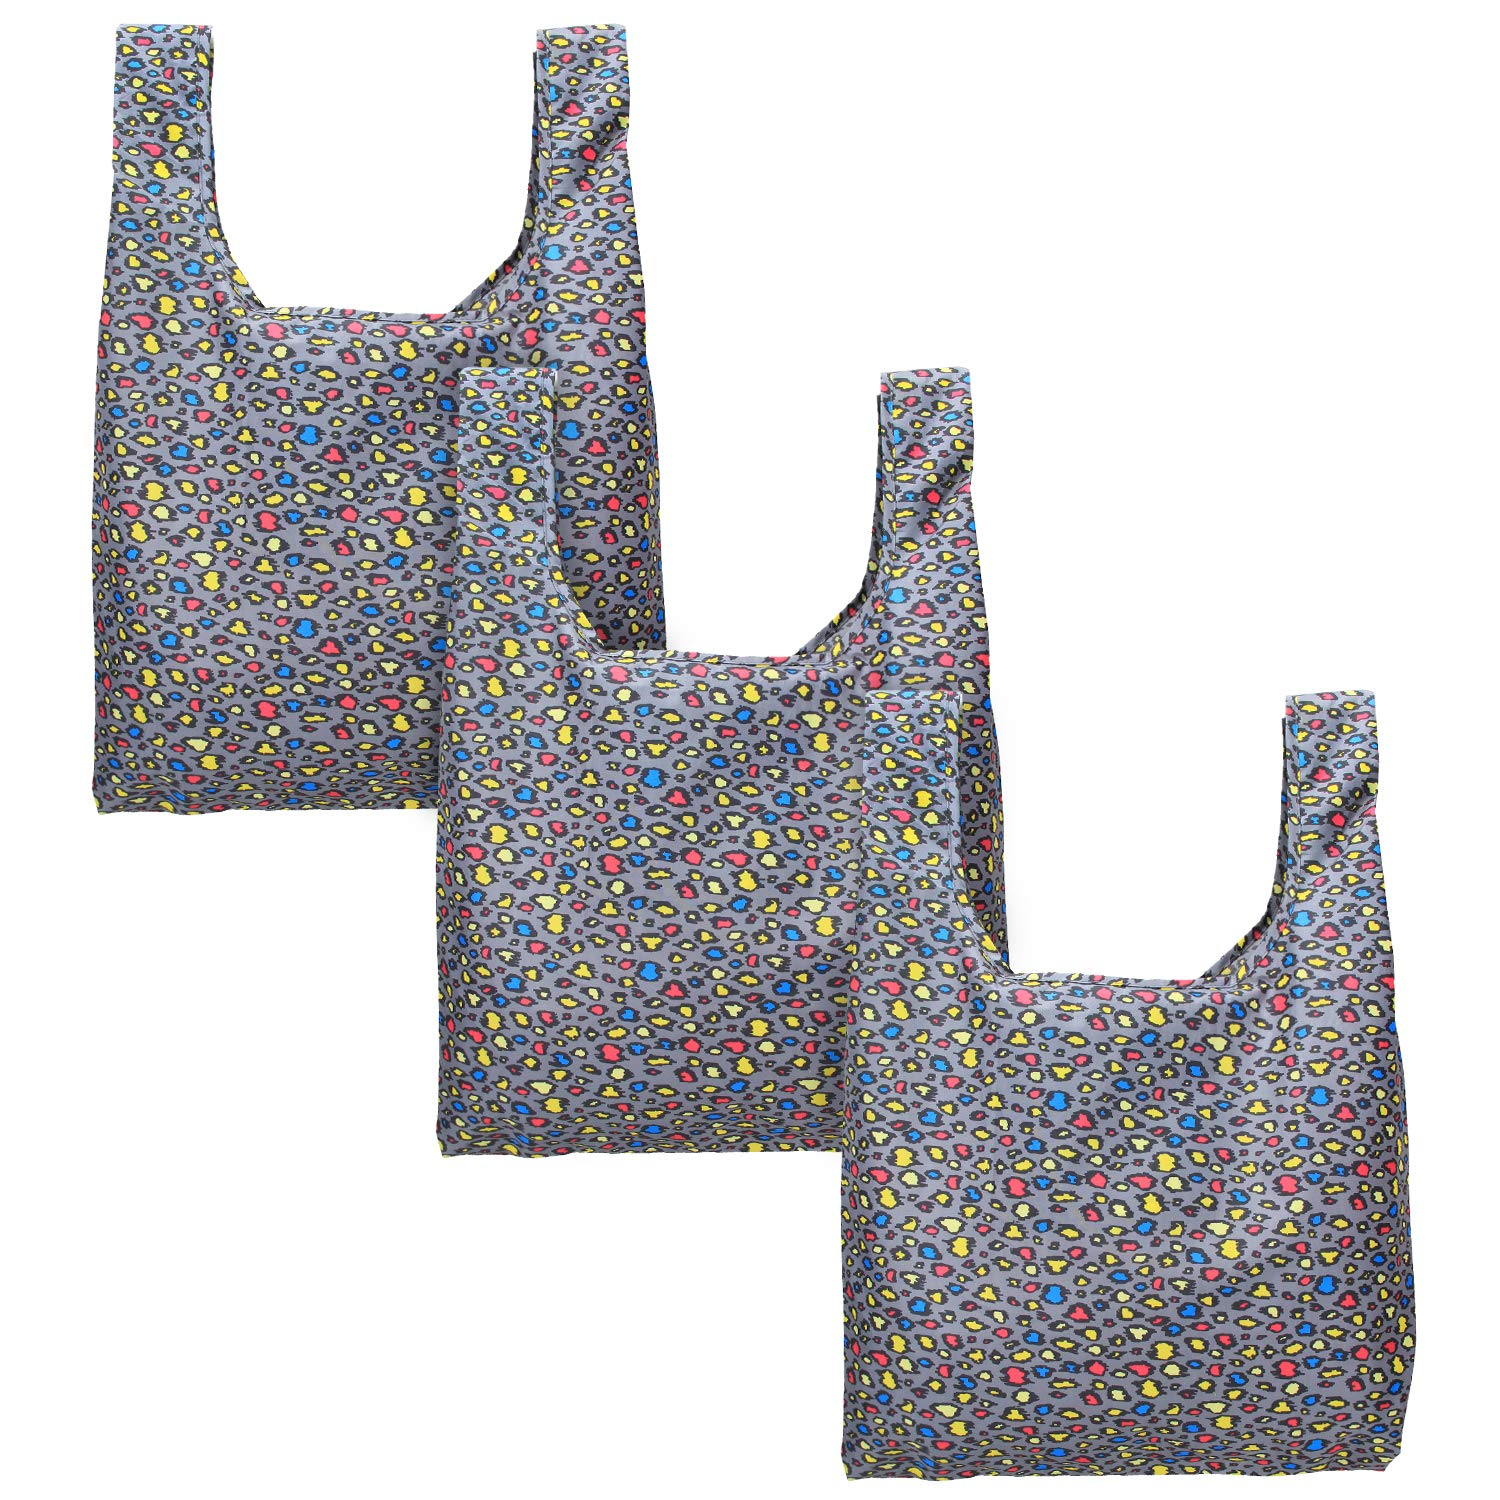 Luxja 3pcs Reusable Shopping Bag, Foldable Shopping Tote with Attached Pouch, Washable, Durable and Lightweight